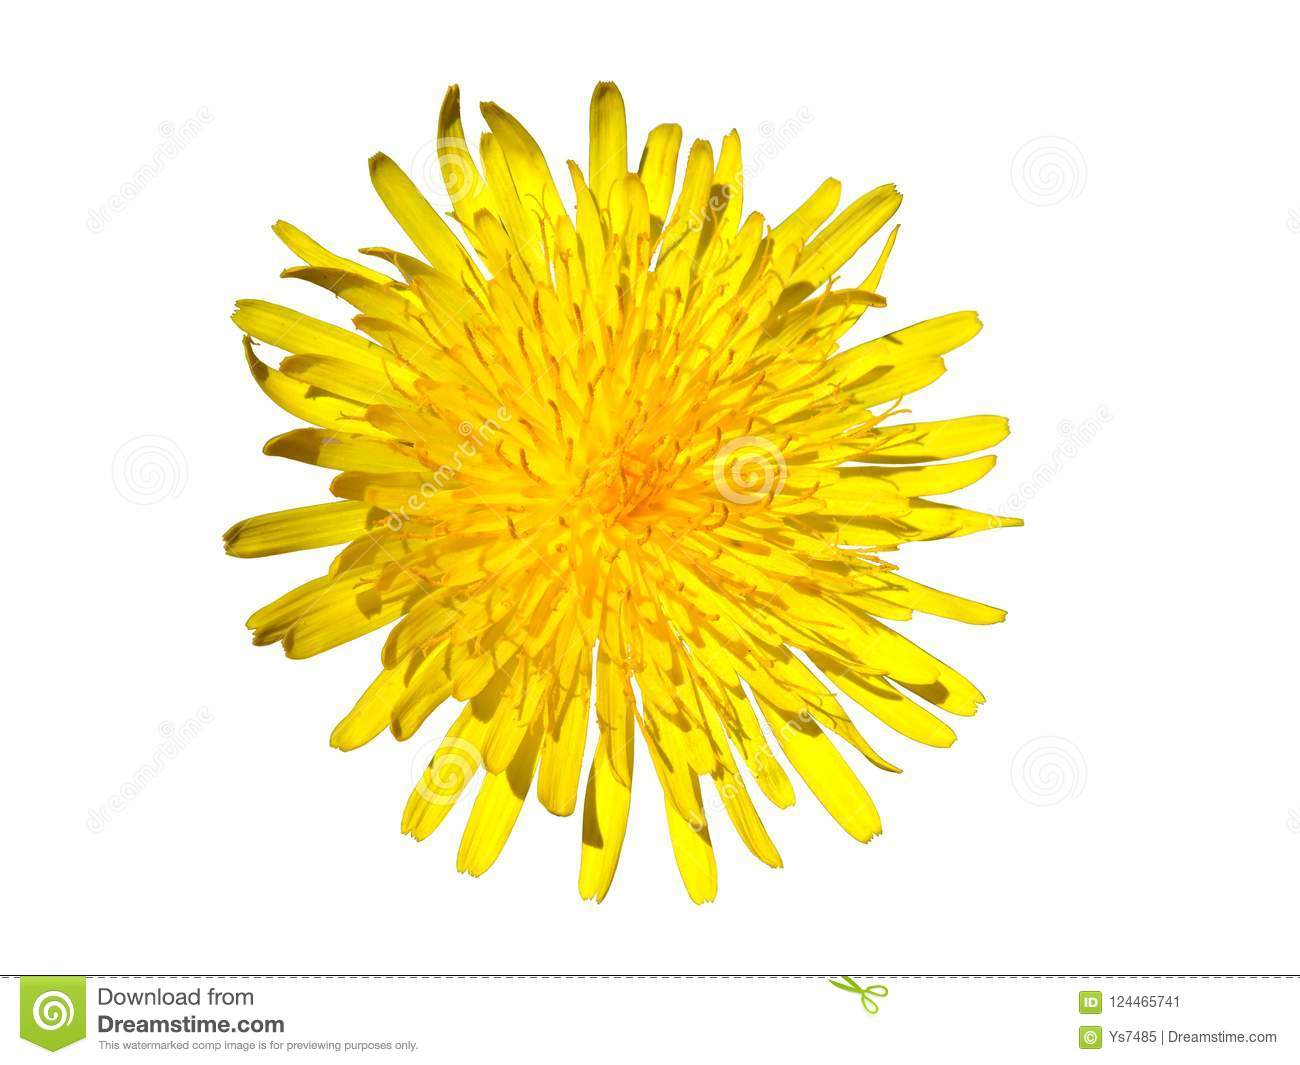 Yellow flower with many thin petals closeup isolated on white download yellow flower with many thin petals closeup isolated on white background stock image image mightylinksfo